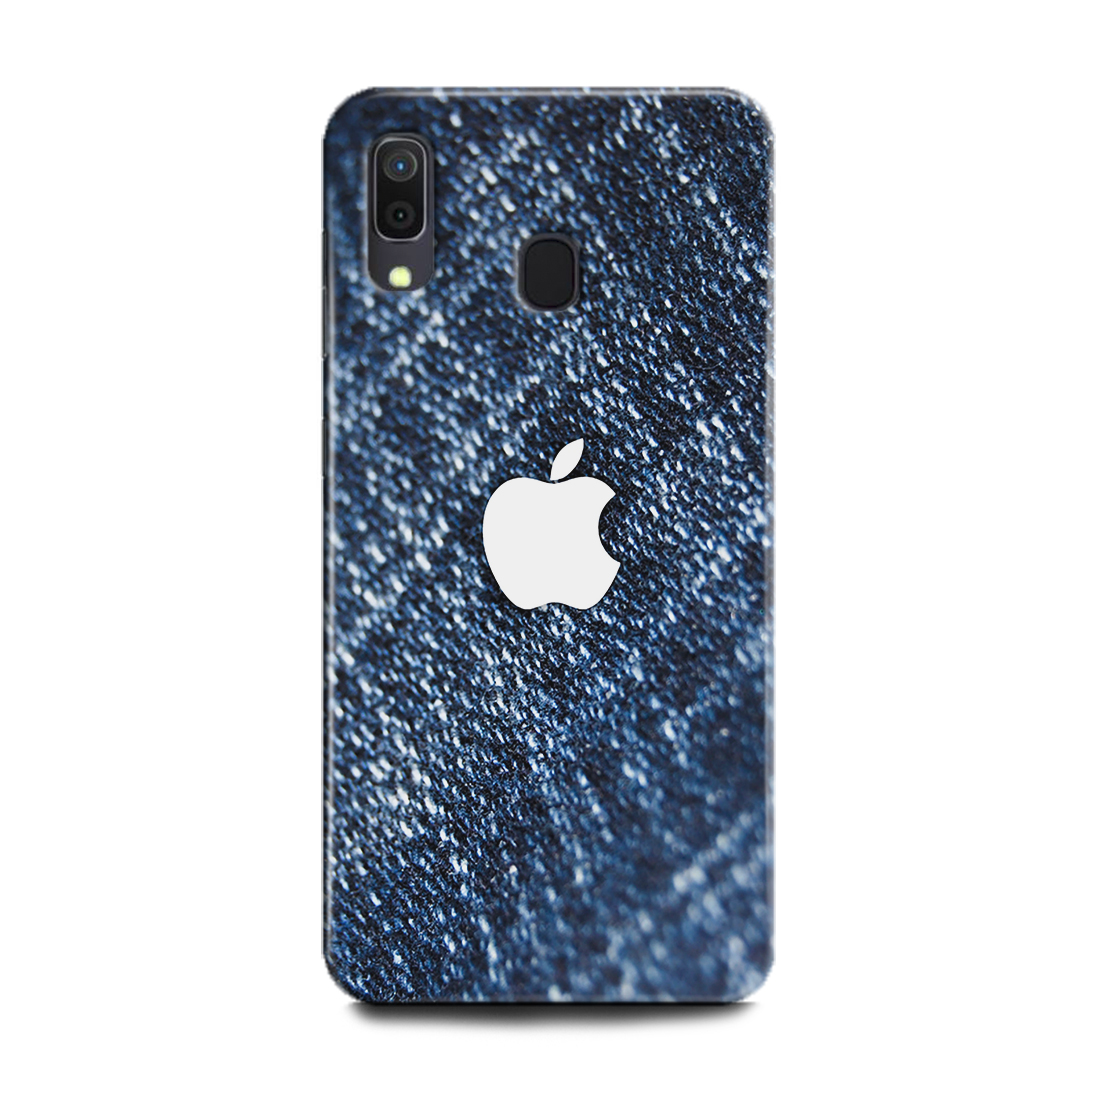 INDICRAFT Mobile Back Cover For Samsung Galaxy A20 Hard Case (Apple, Apple Logo, Apple Sign, Apple Embolem, Jeans, Blue, Abstract, Texture, Fabric, A20) (AB-GalaxyA20-0722)